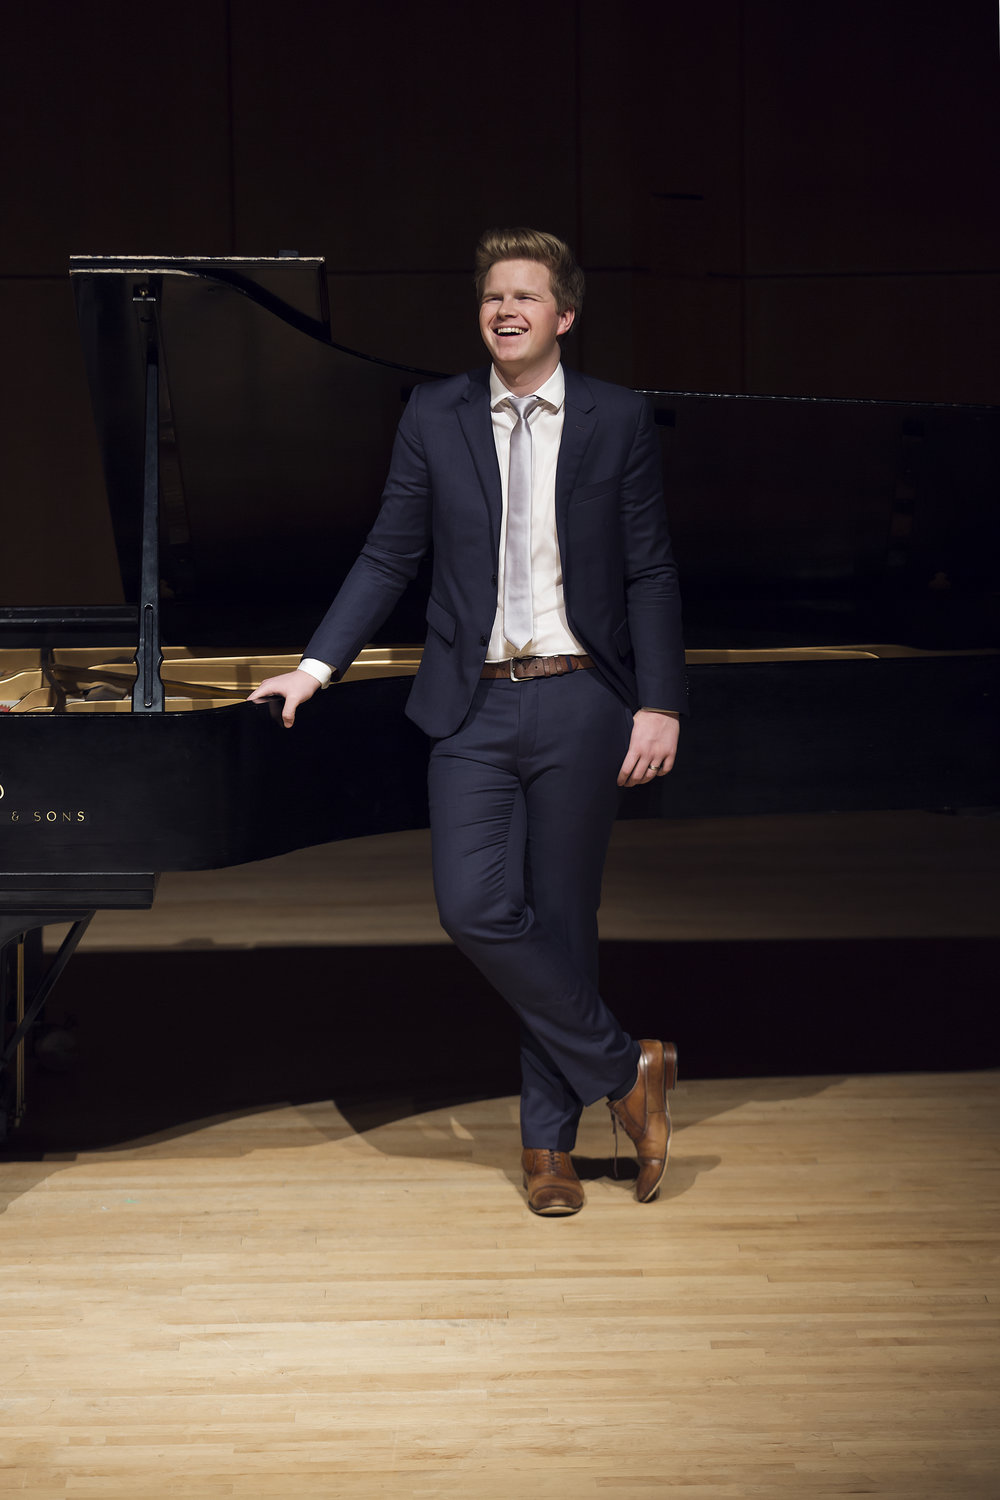 Bach, Prokofiev, Chopin - A musical, emotional journey with our First Place 2018 Bursary Competition winner, and the recipient of the Pat Hoebig Memorial Award.